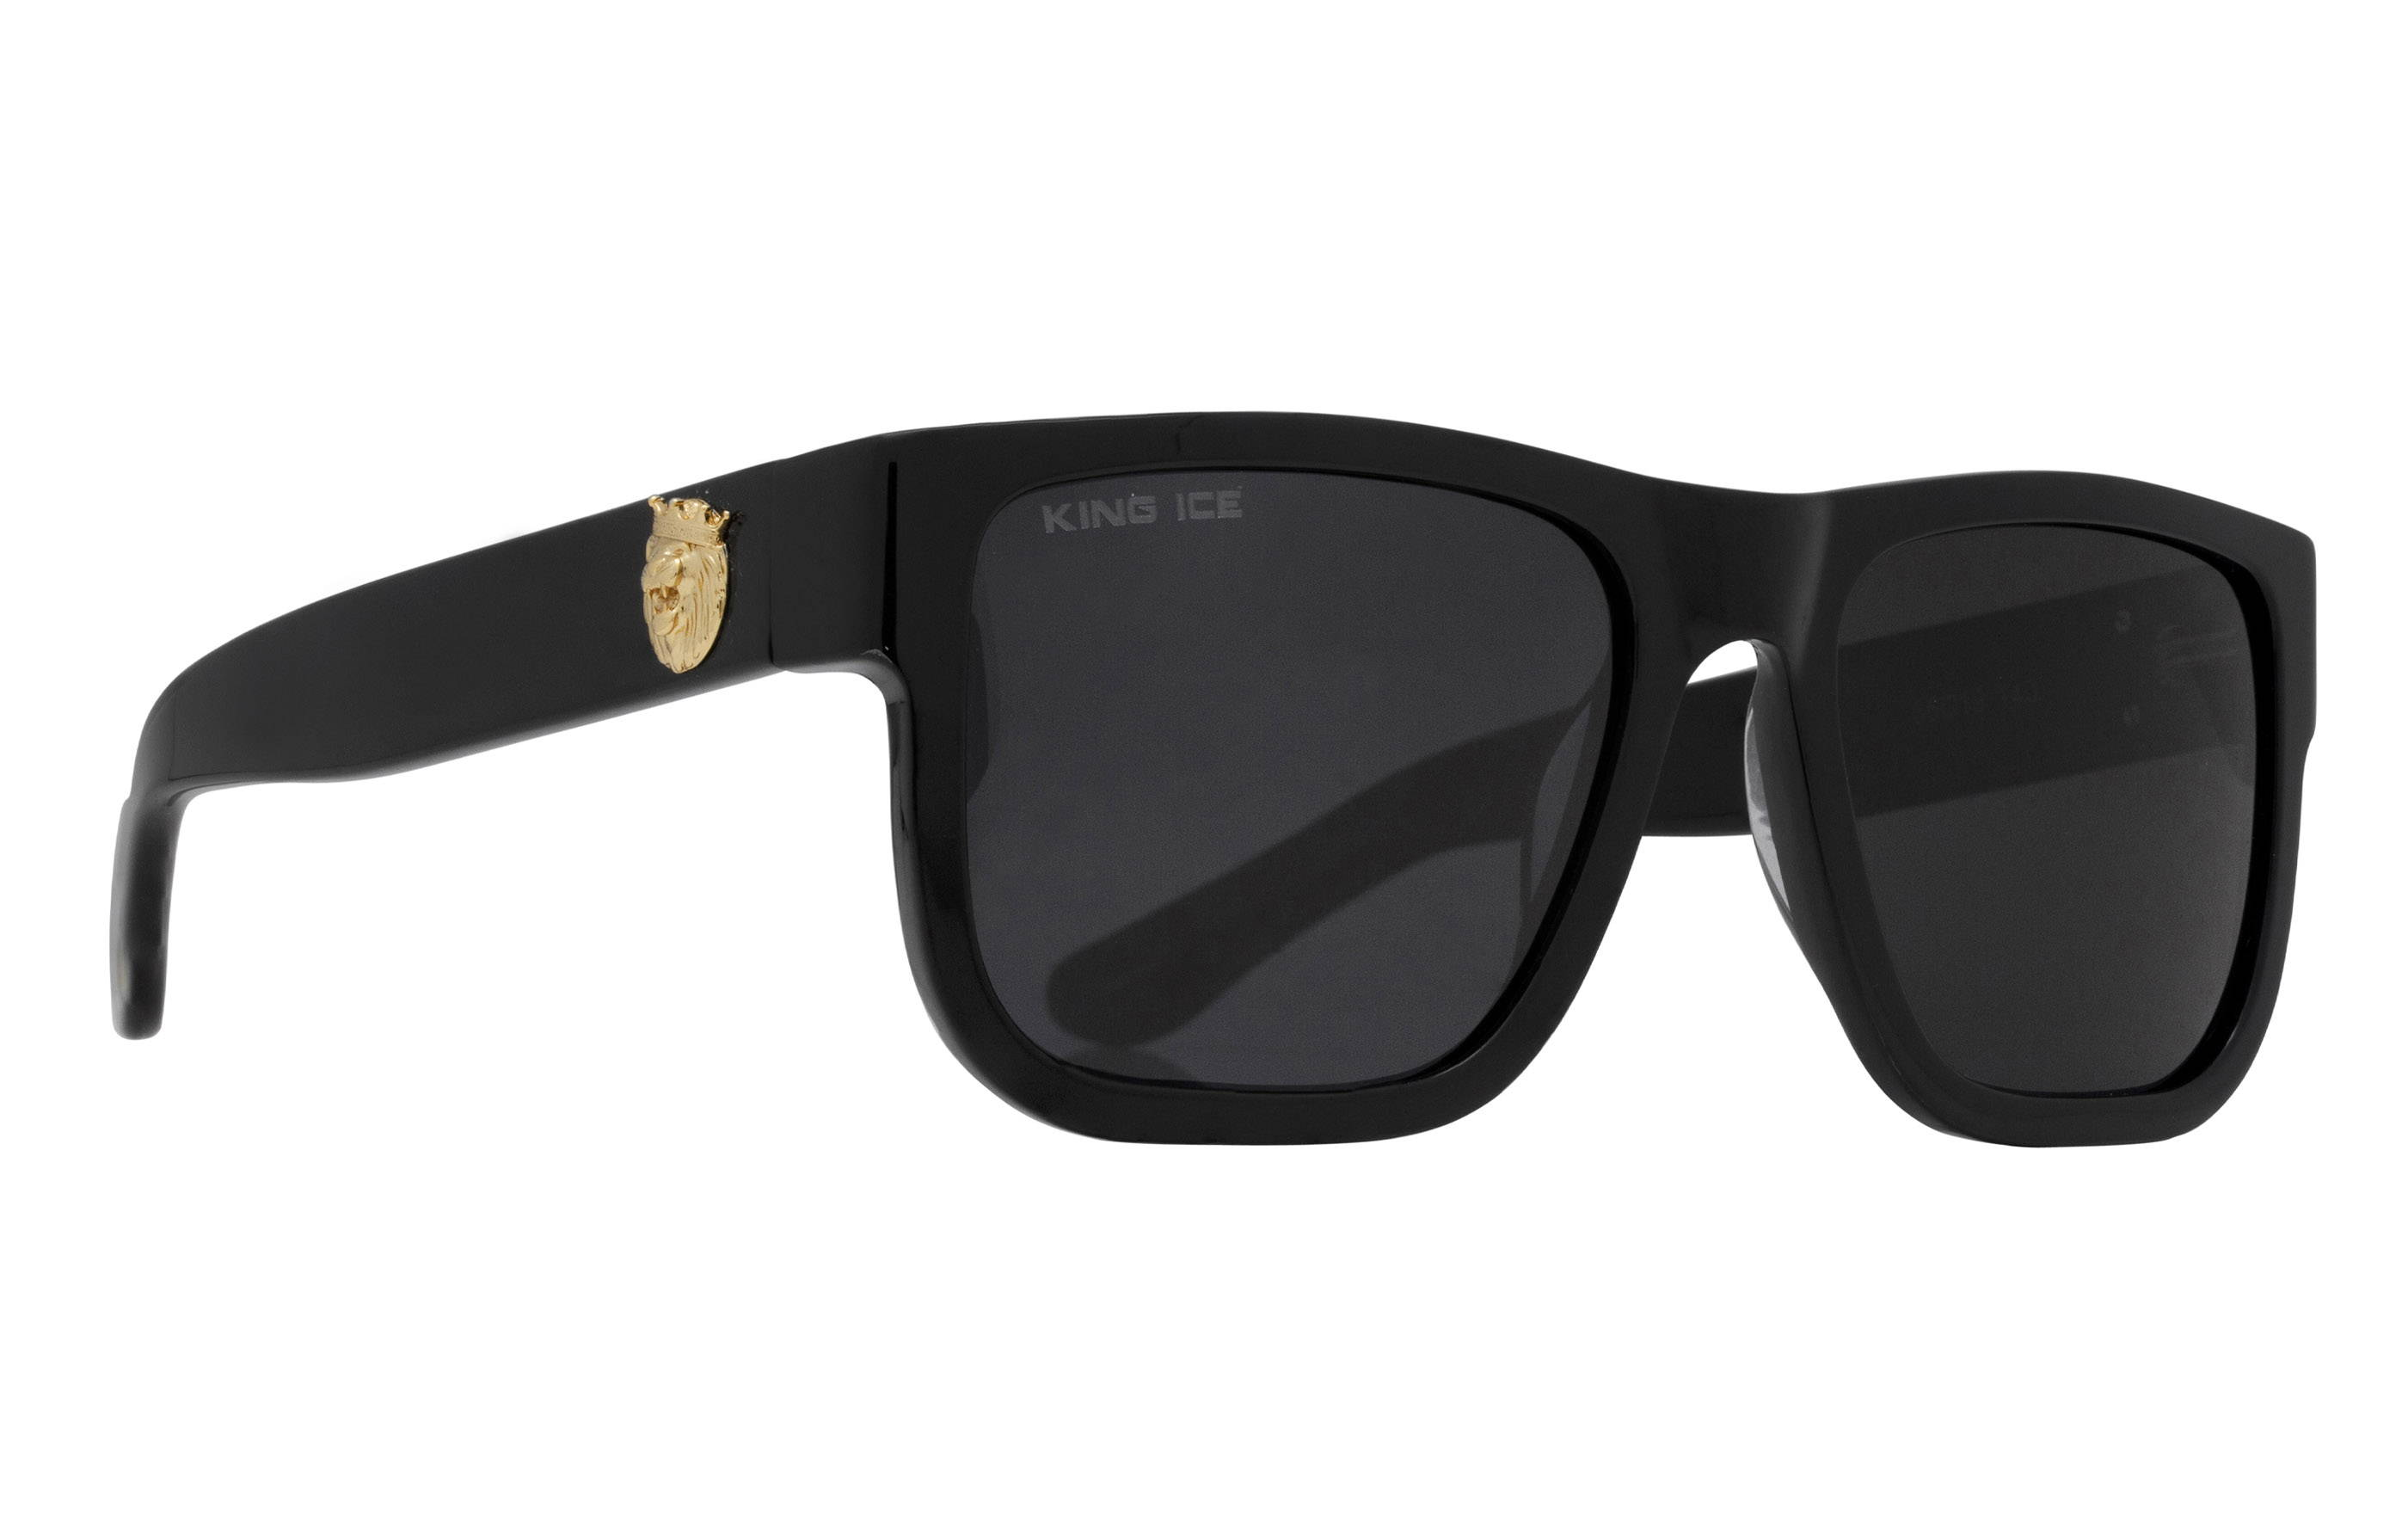 King Ice Lion Head Shades with Glossy Black Frame